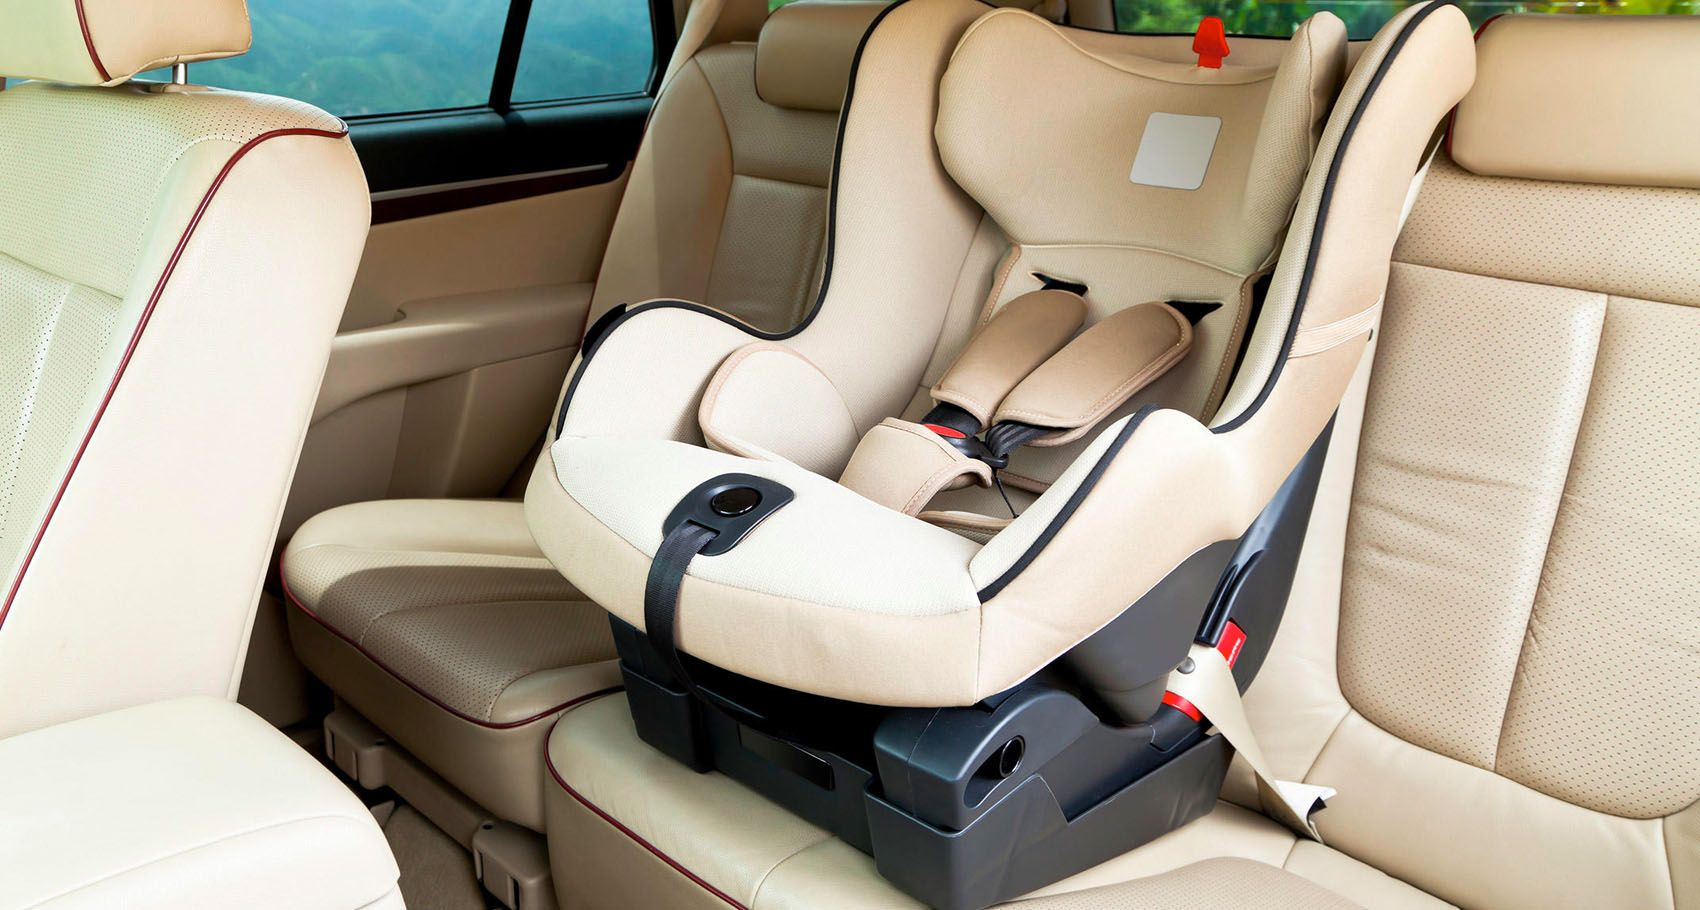 Cold Weather Reminder For Car Seat Safety: No Jackets ...